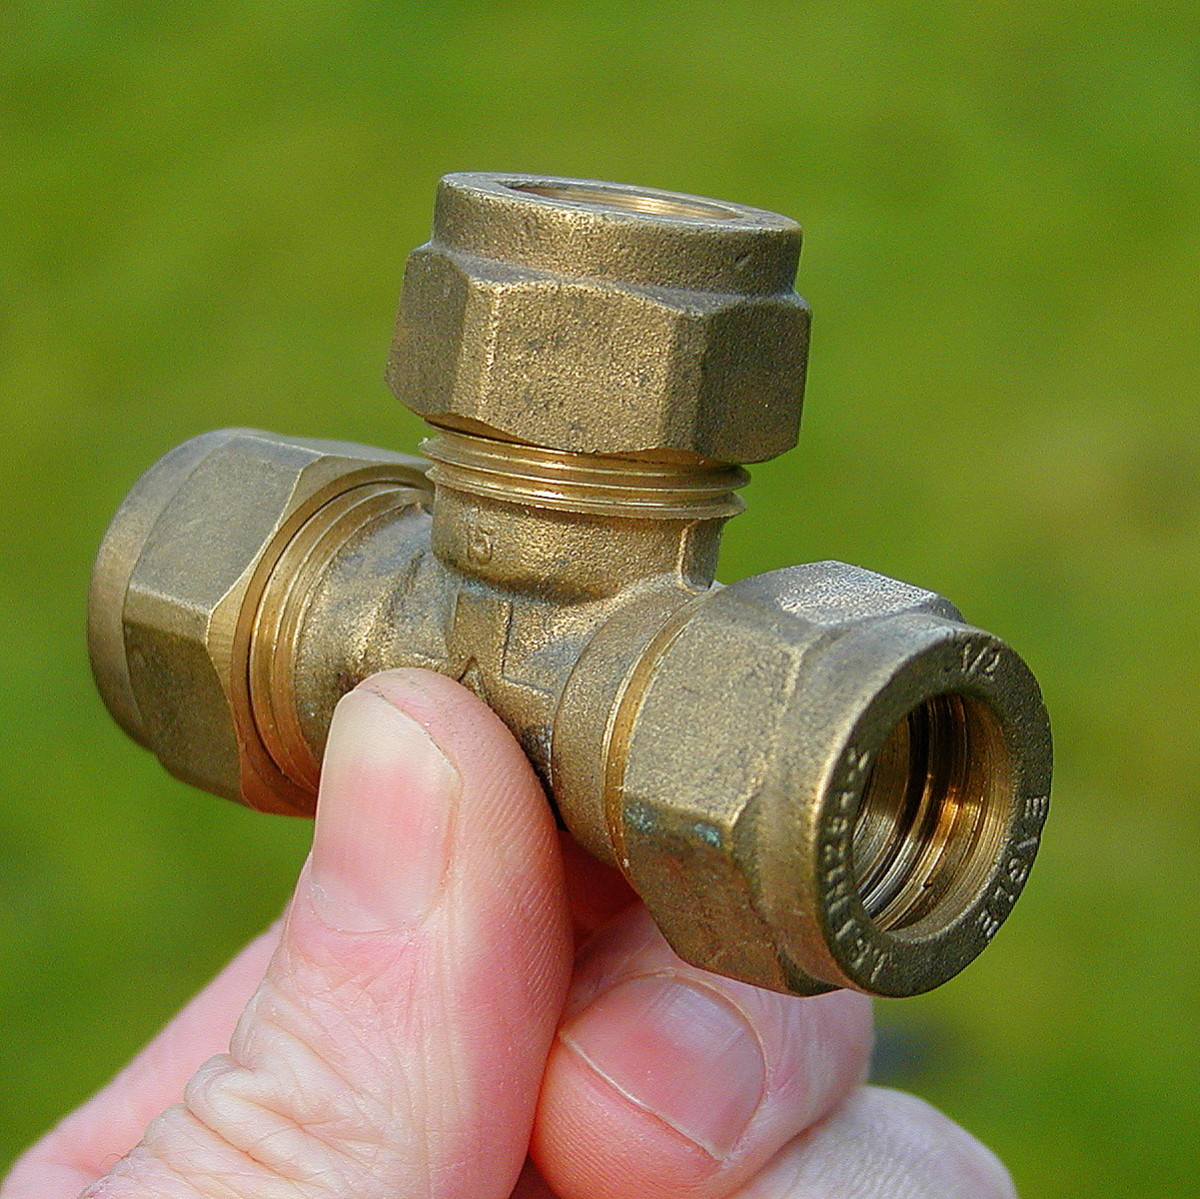 How to Use Plumbing Fittings for Joining PVC, PEX, and Copper Pipe